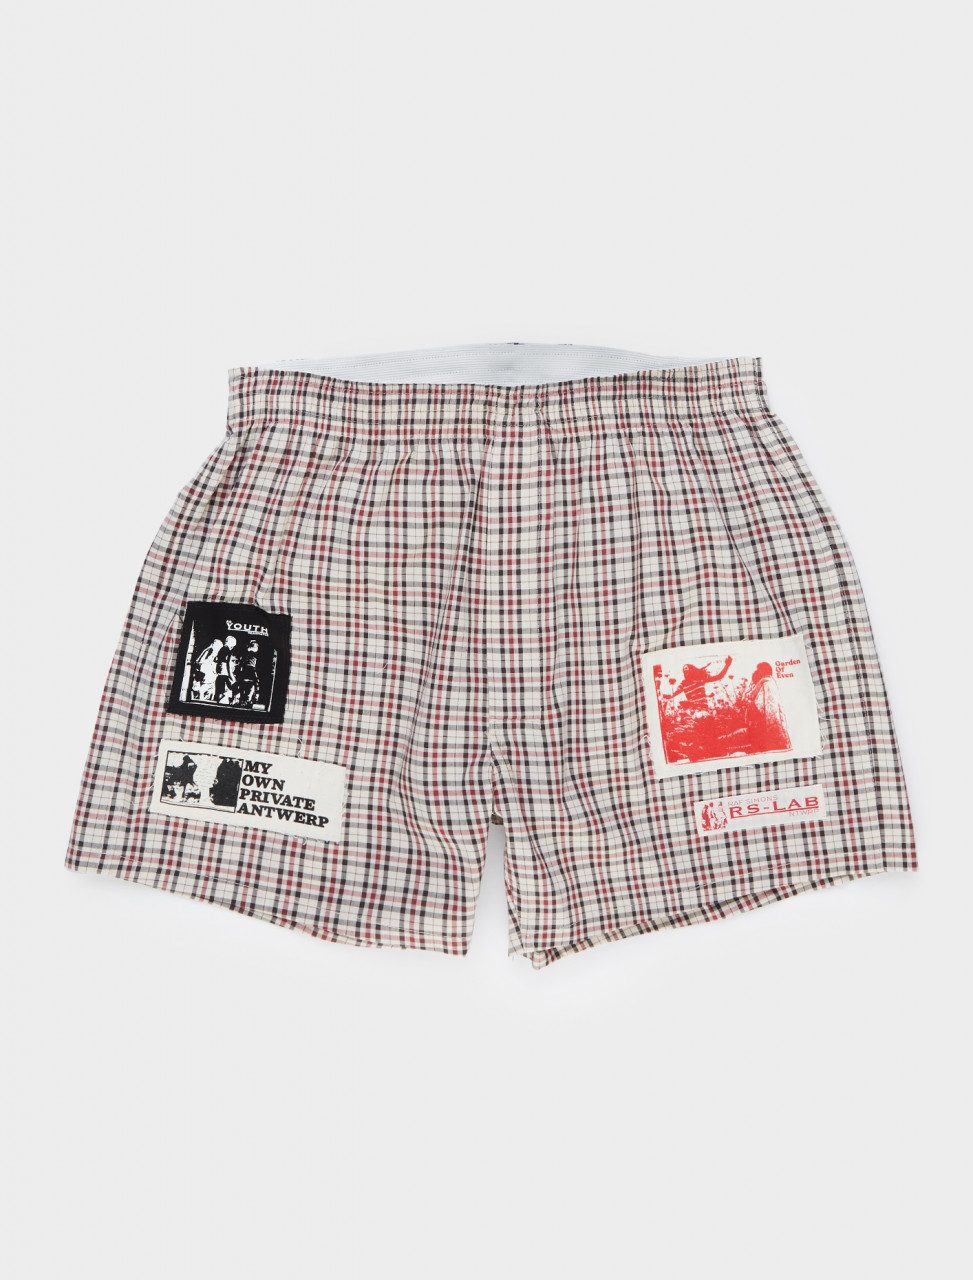 Raf Simons Boxershorts with Patches in Off-White and Black Front